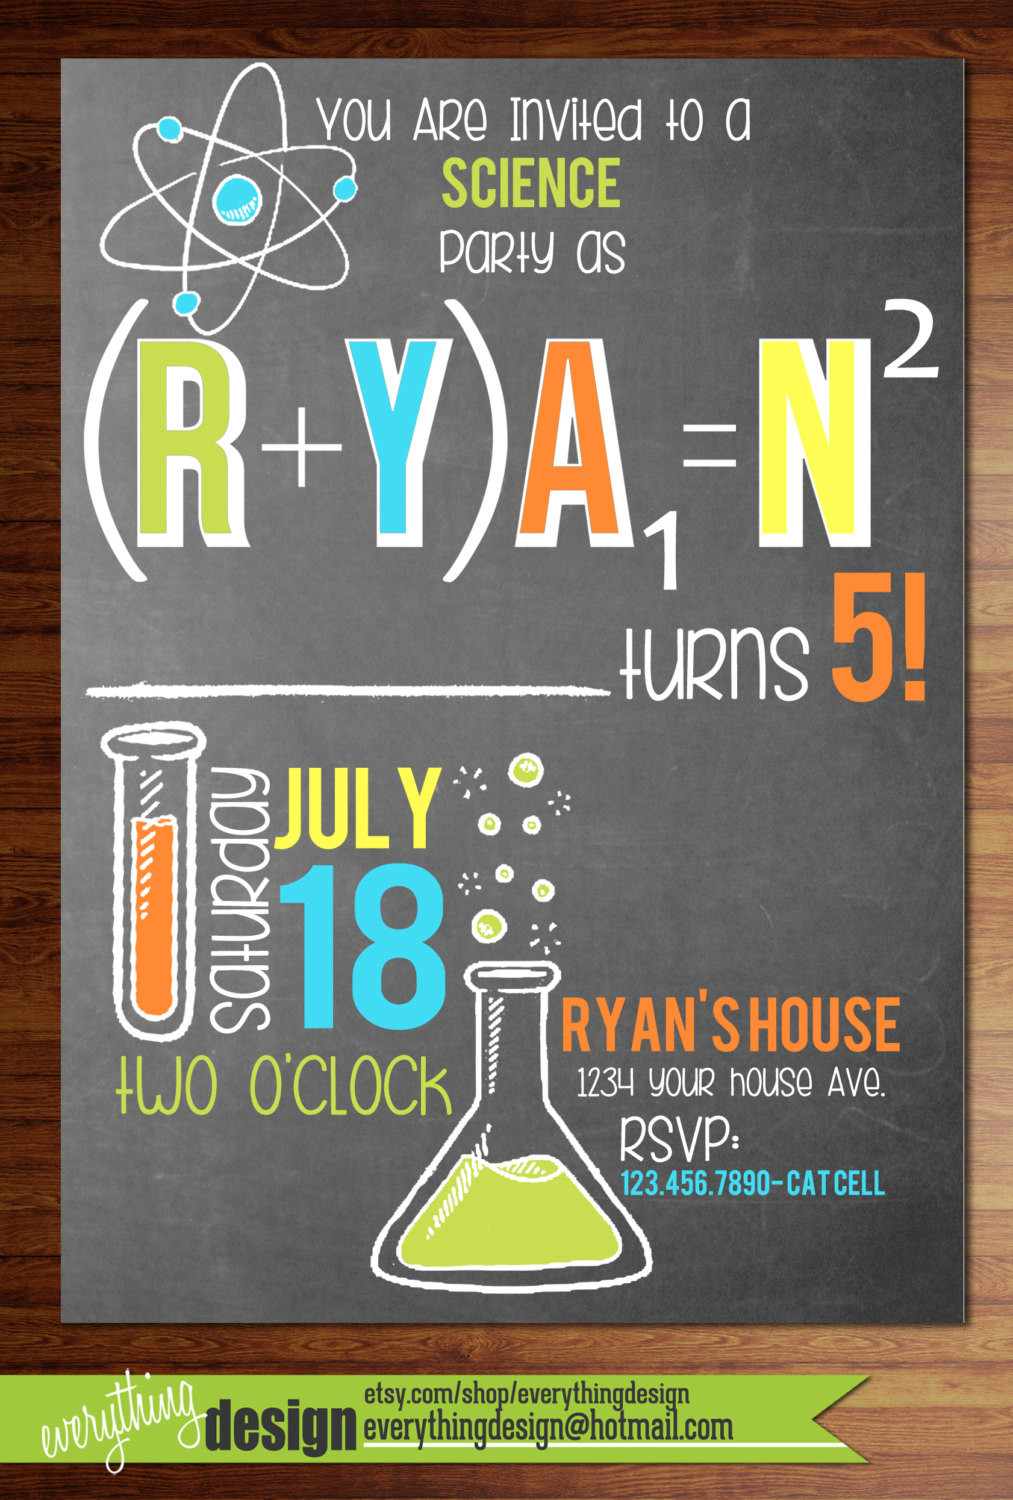 Best ideas about Order Birthday Invitations . Save or Pin Custom printed science party invitations birthday shower Now.